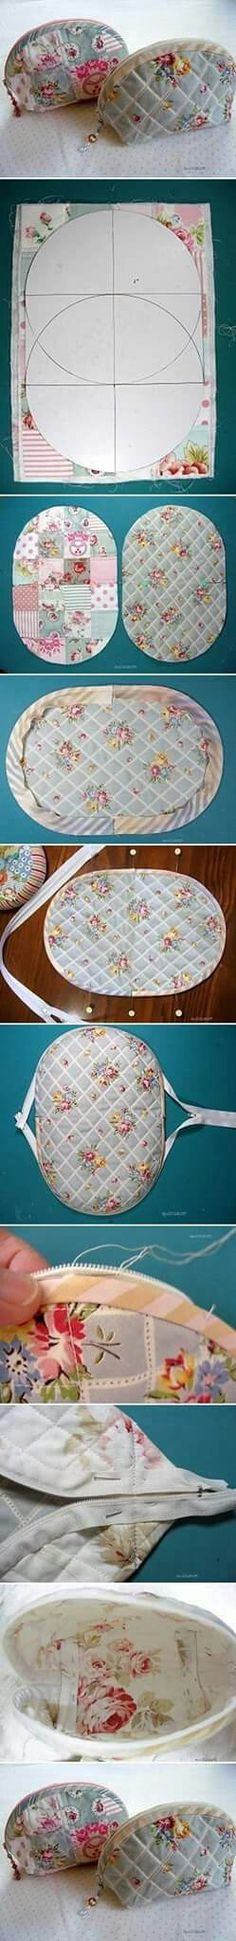 DIY Sew Makeup Bag… I'm thinking this is a great pattern idea for placemats. DIY Sew Makeup Bag… I Sewing Hacks, Sewing Tutorials, Sewing Crafts, Sewing Projects, Sewing Patterns, Free Tutorials, Diy Projects, Knitting Patterns, Purse Patterns